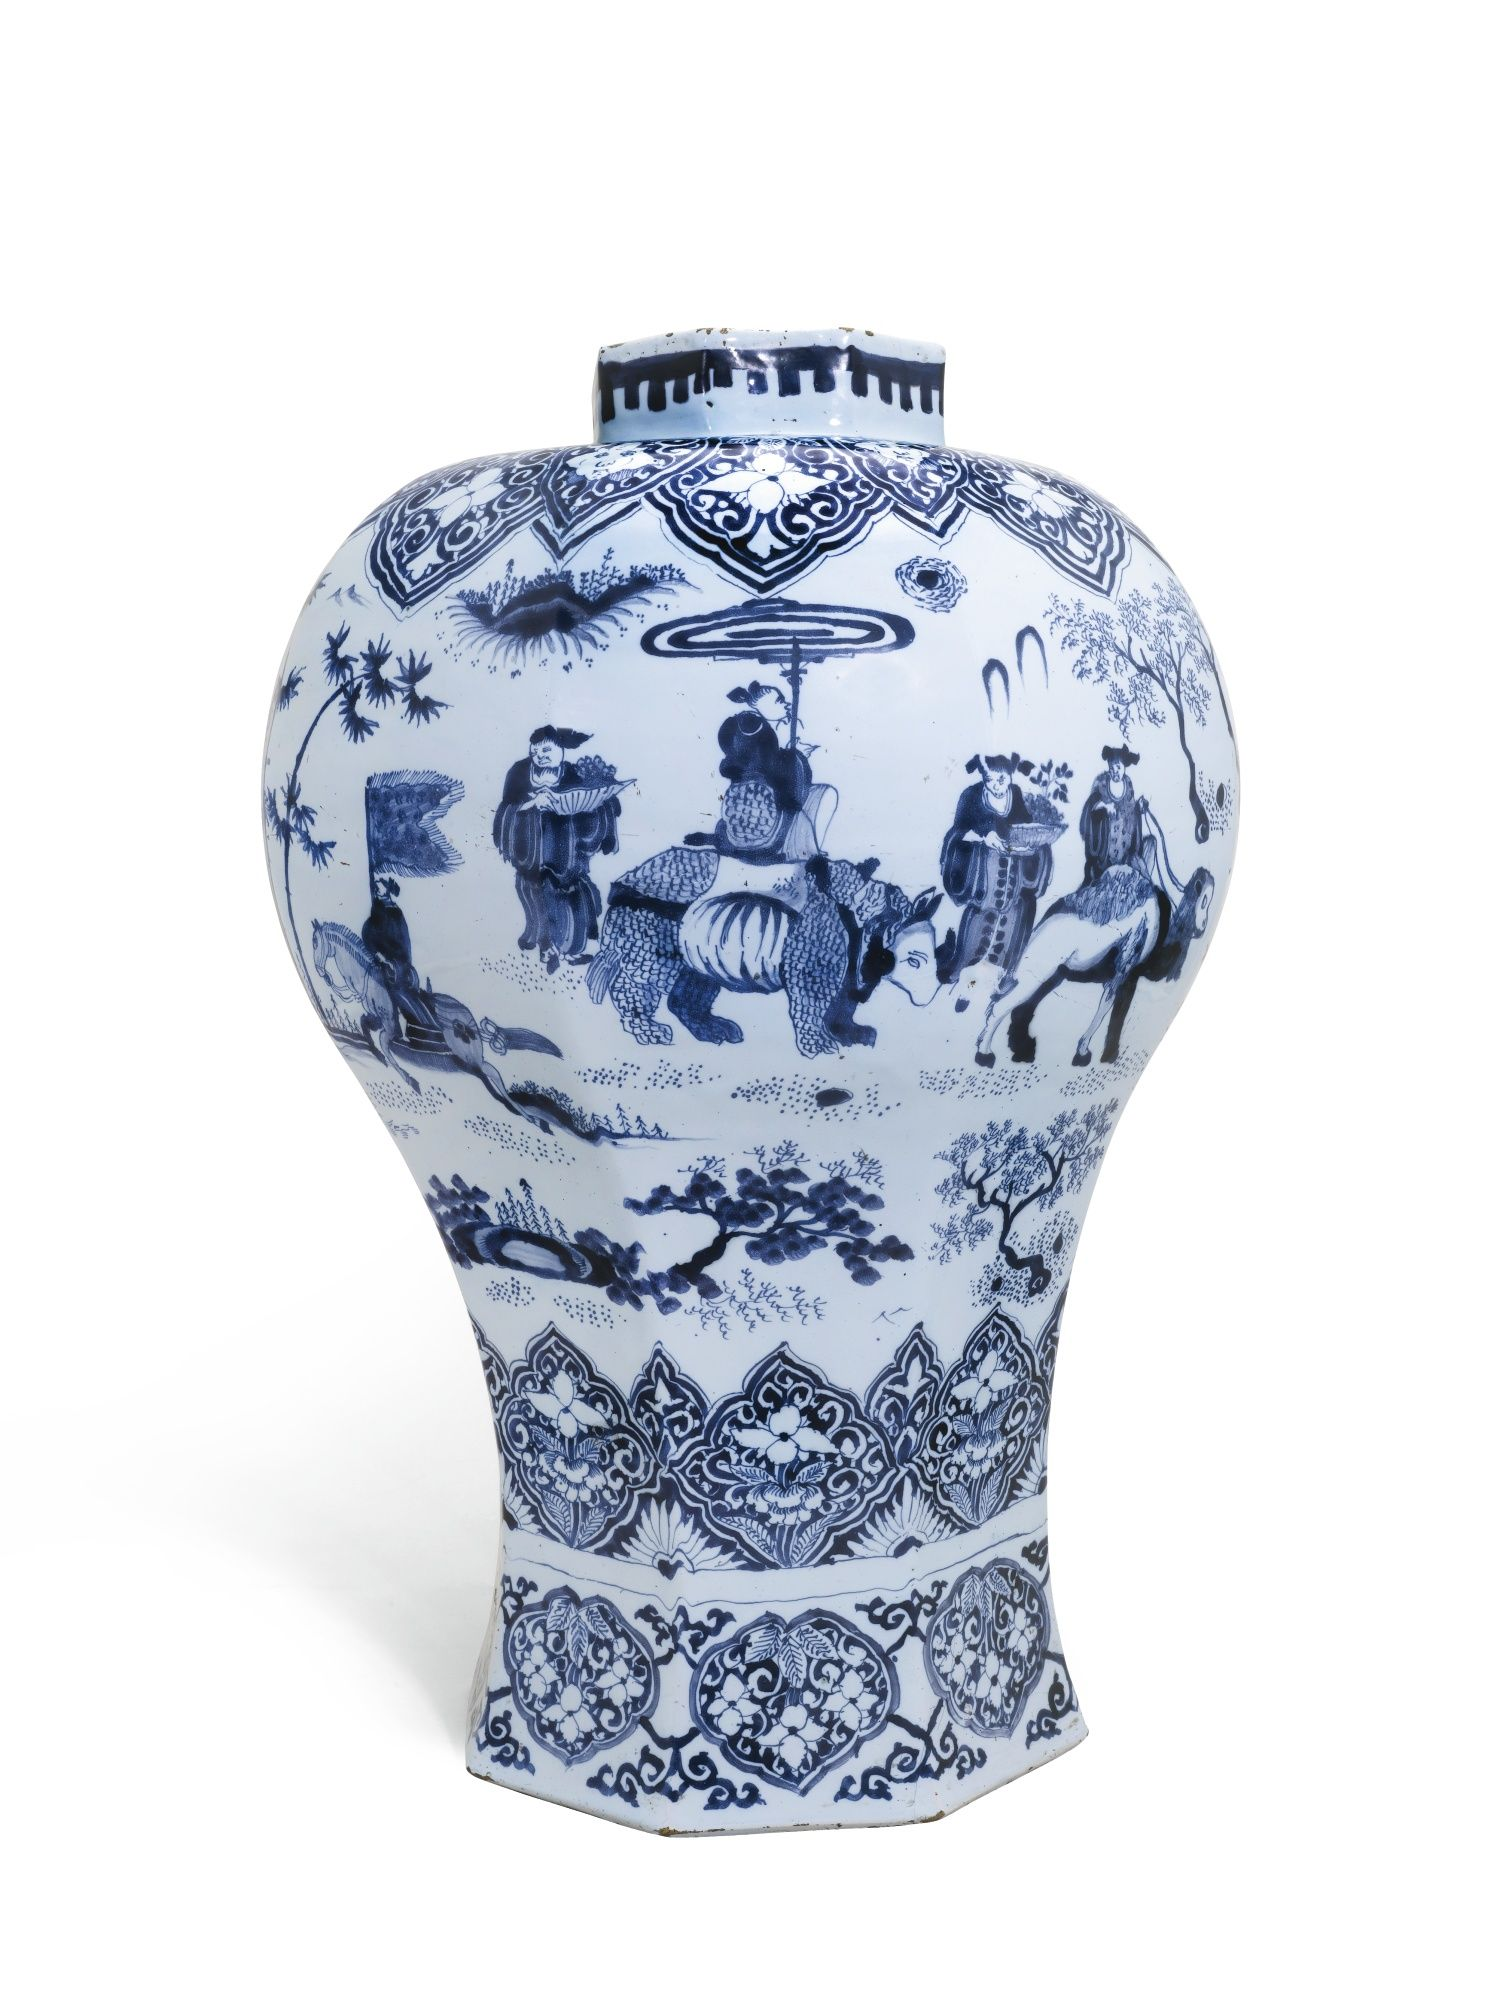 A Large Dutch Delft Blue And White Vase, Late Seventeenth